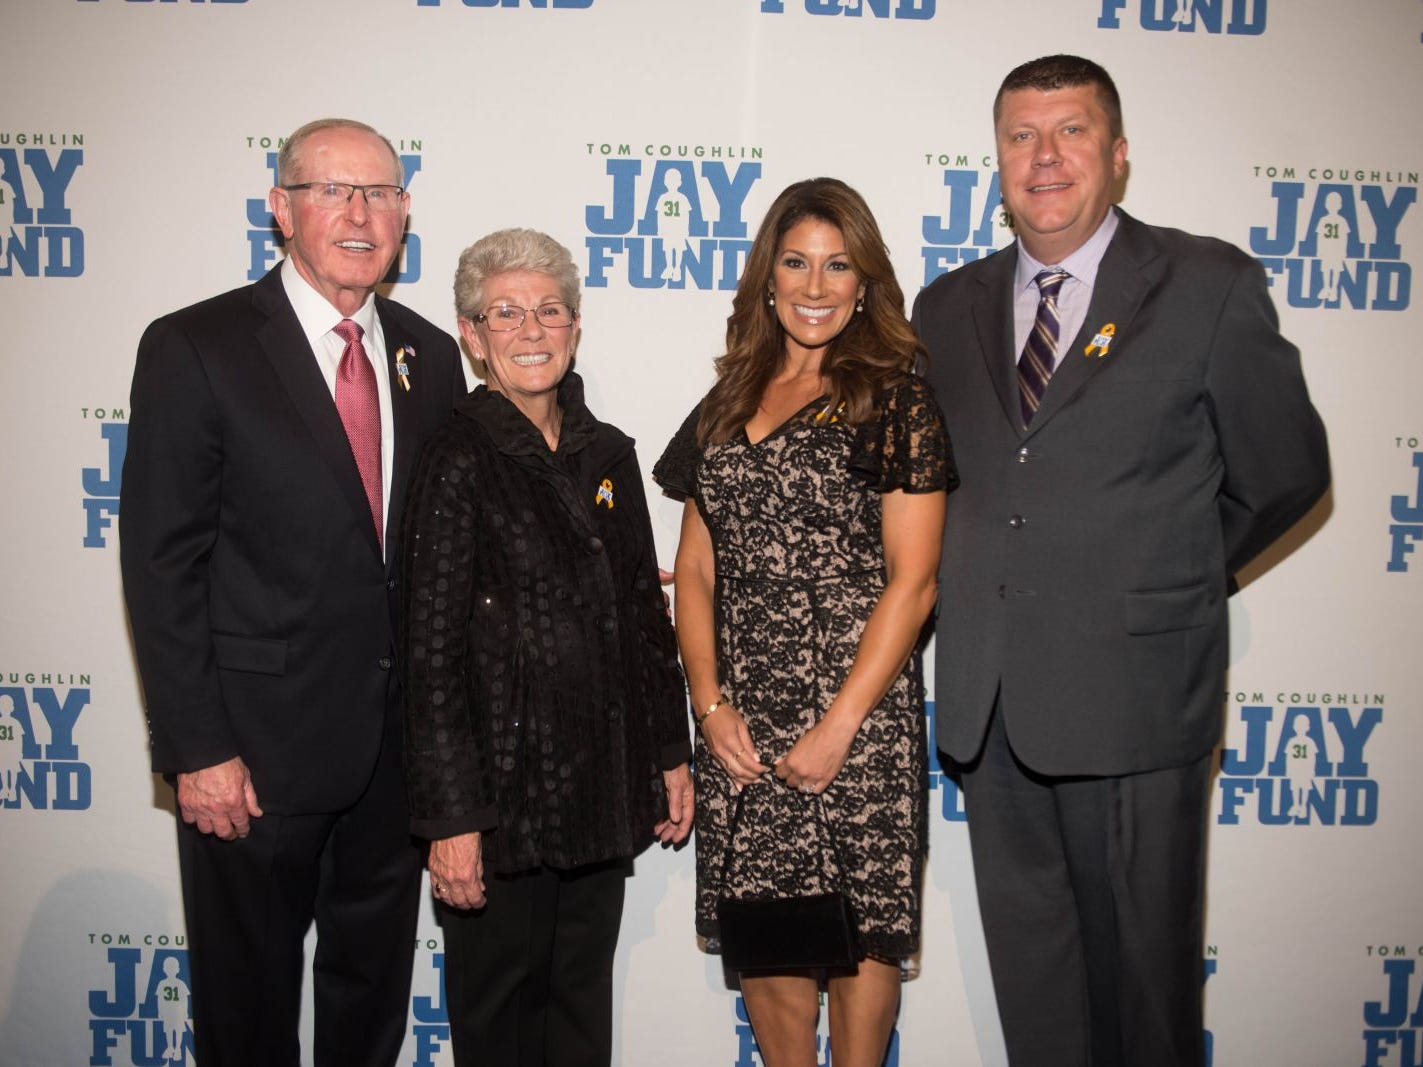 Tom Coughlin, Judy Coughlin, Tina Cervasio and Kevin McKearney. The 14th annual Jay Fund Champions for Children Gala was held at Cipriani 42nd Street. 09/21/2018